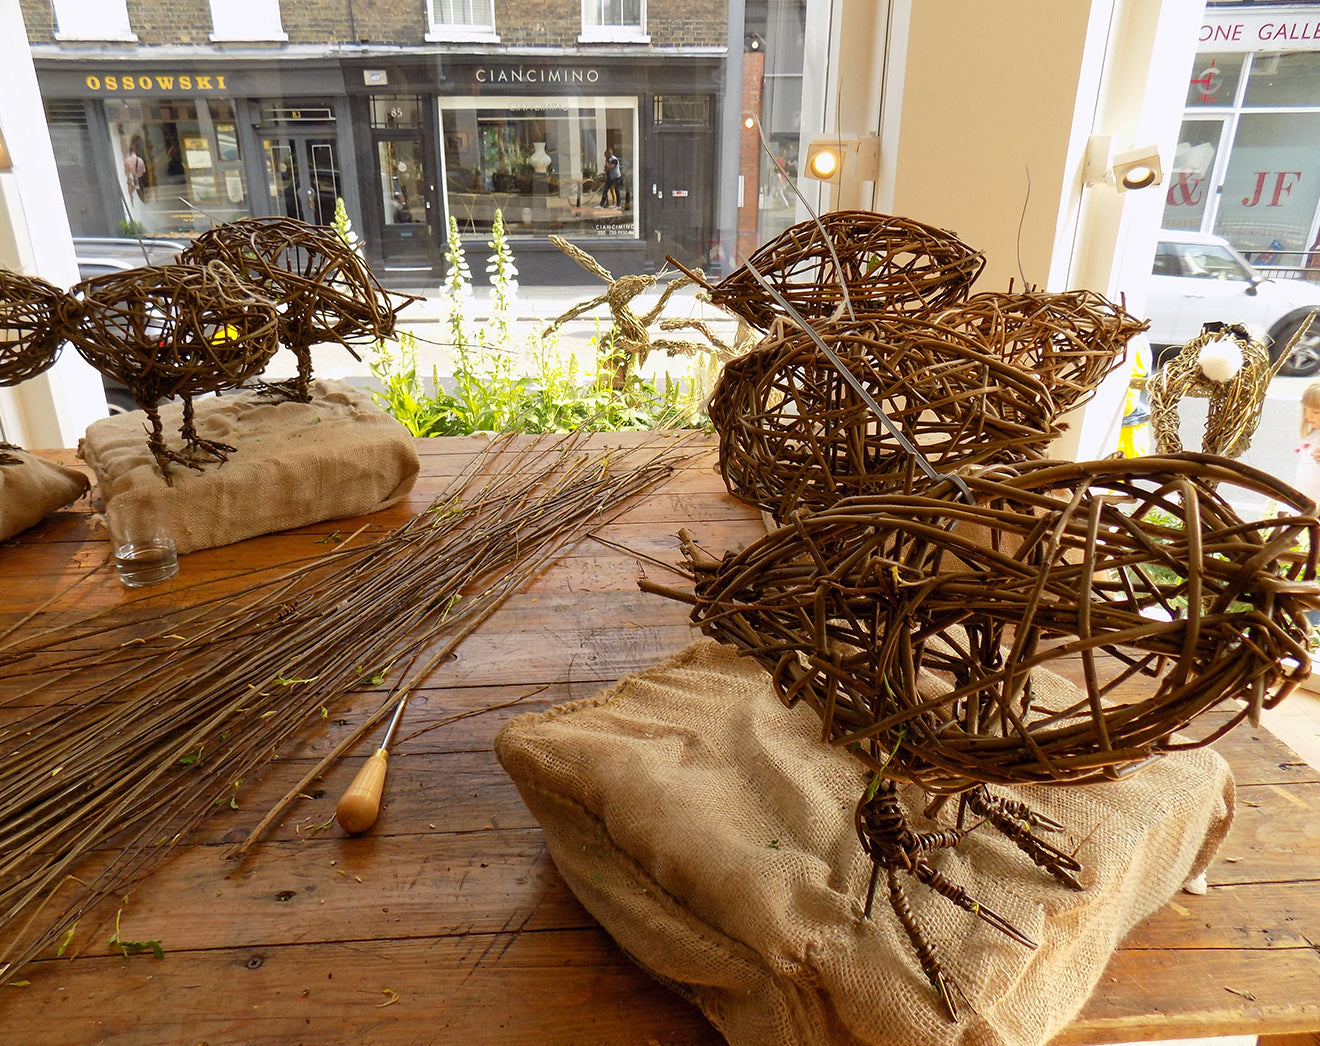 Willow hen and rooster sculptures